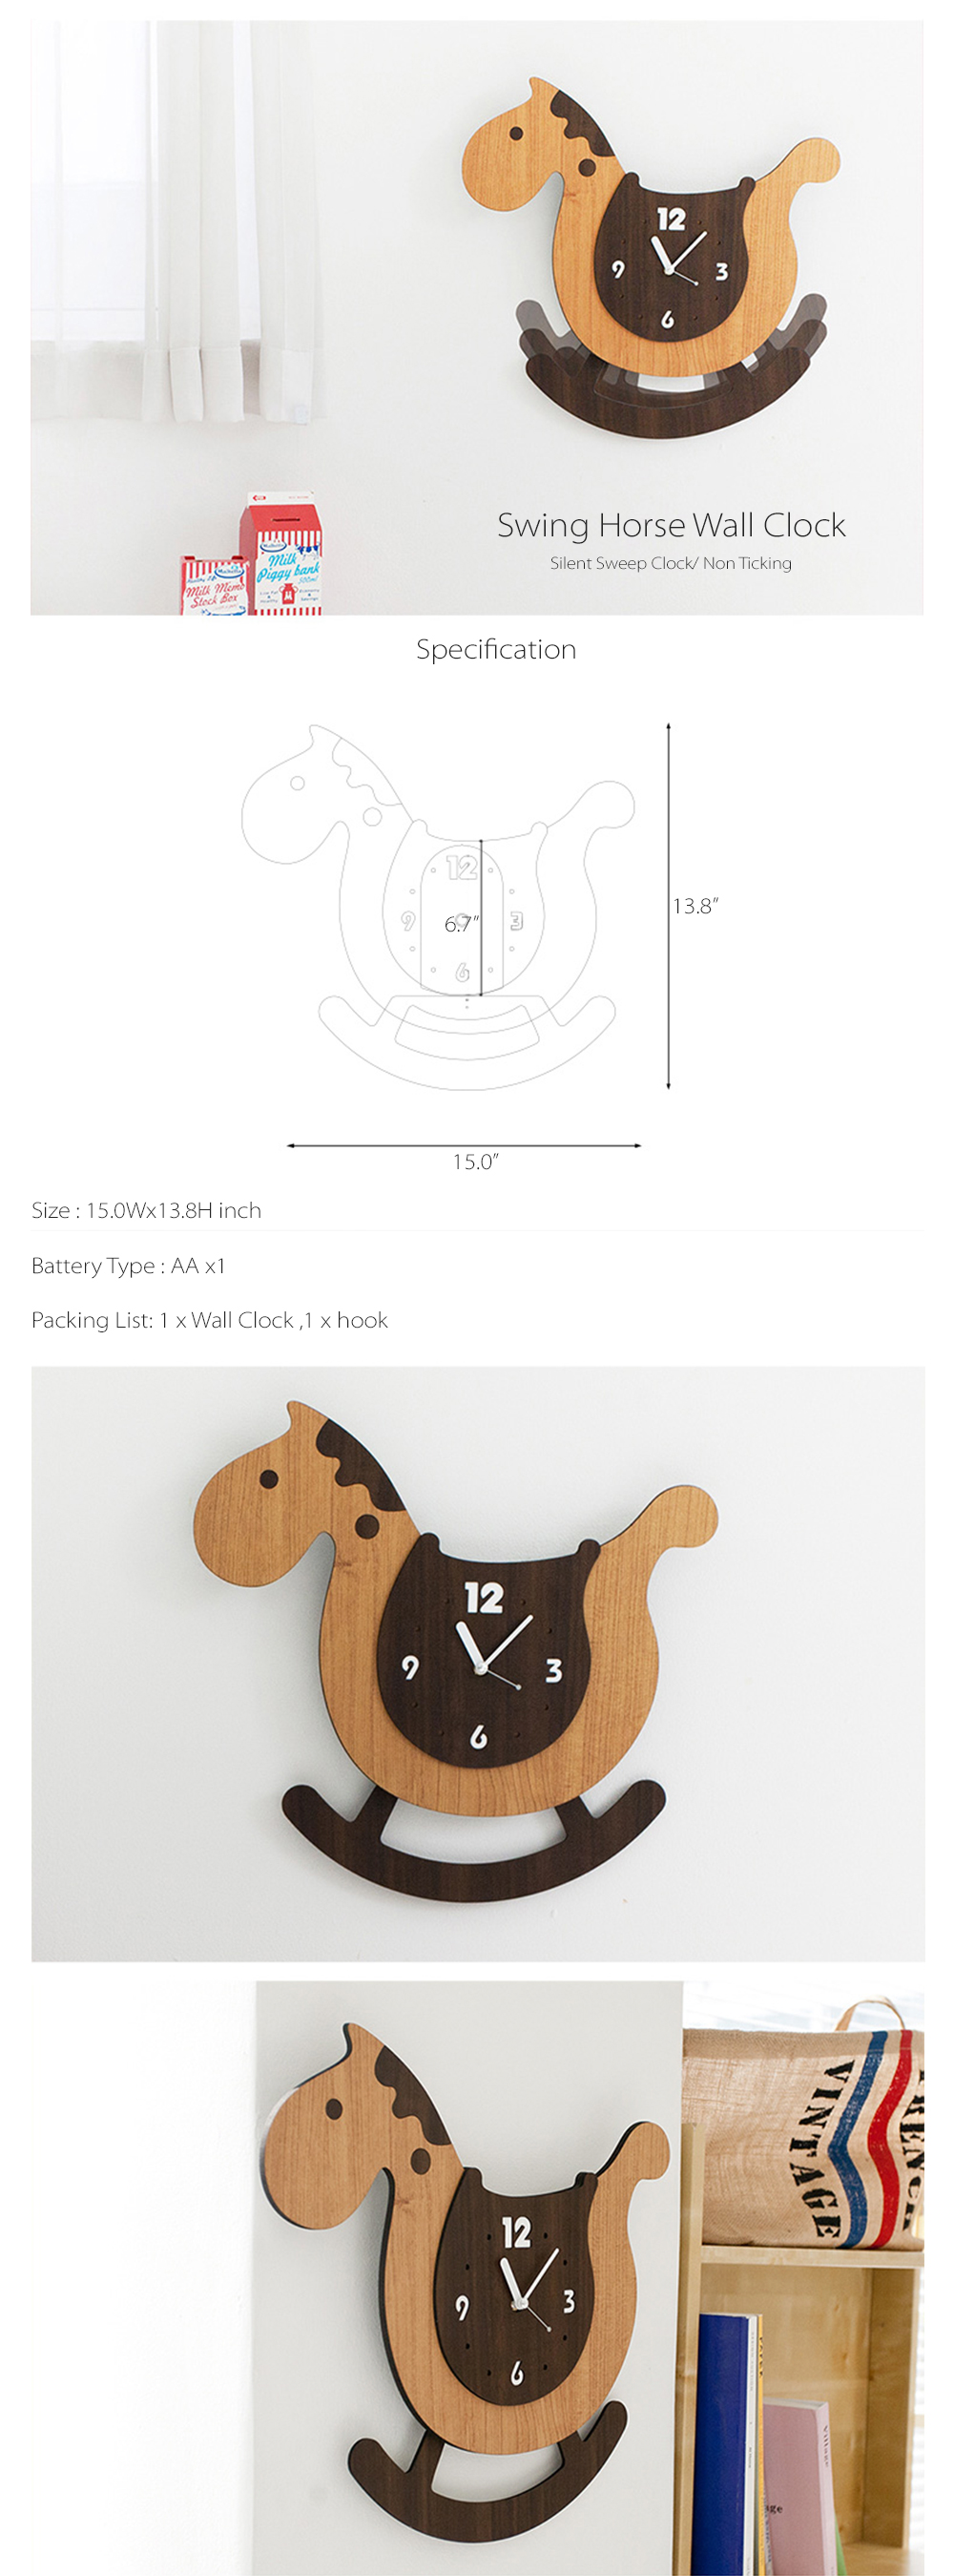 Swing Horse Wall Clock Wall Clock From Icelandic Driftwood